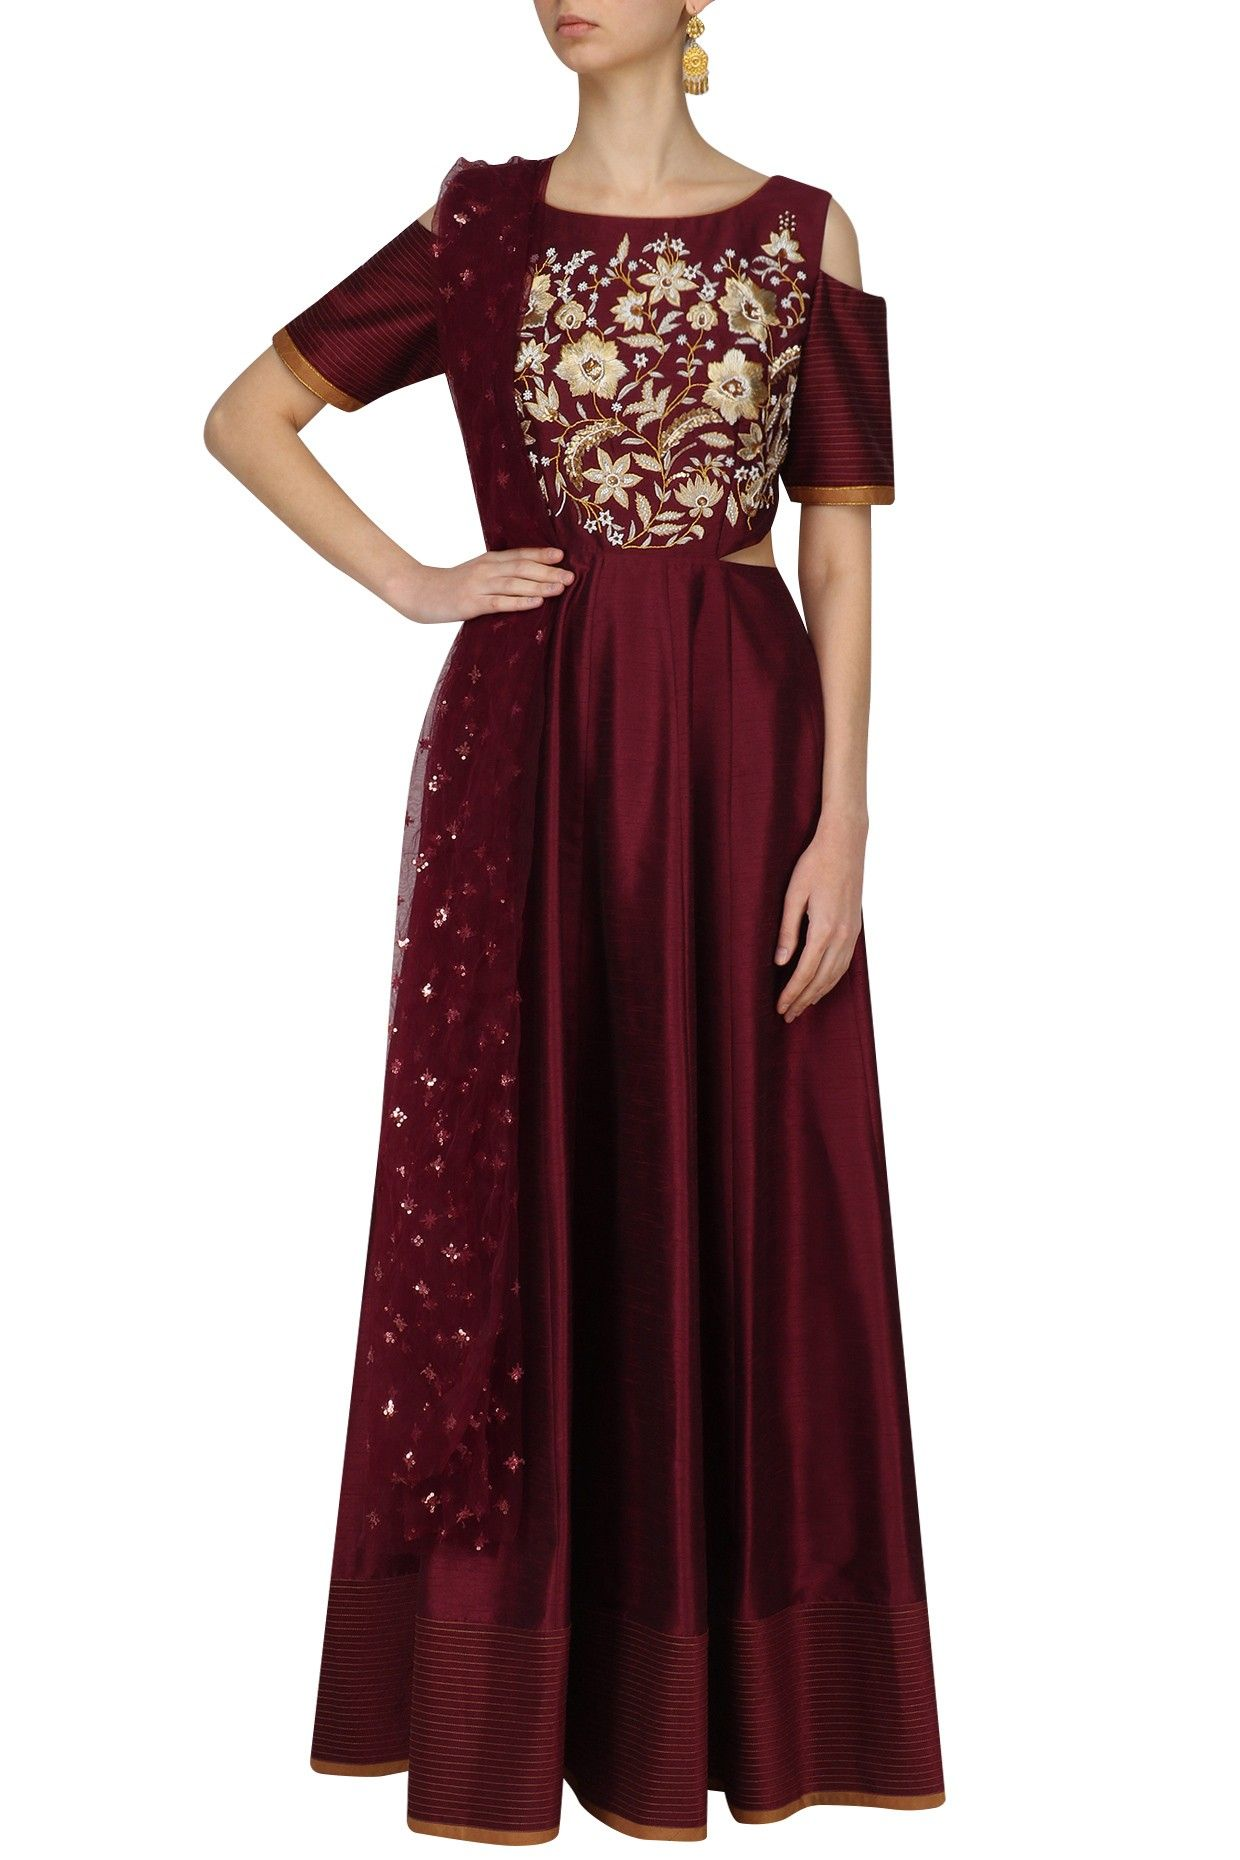 8bc495411c8 Maroon cold shoulder anarkali gown and dupatta set available only at  Pernia s Pop Up Shop.  happyshopping  shopnow  ppus